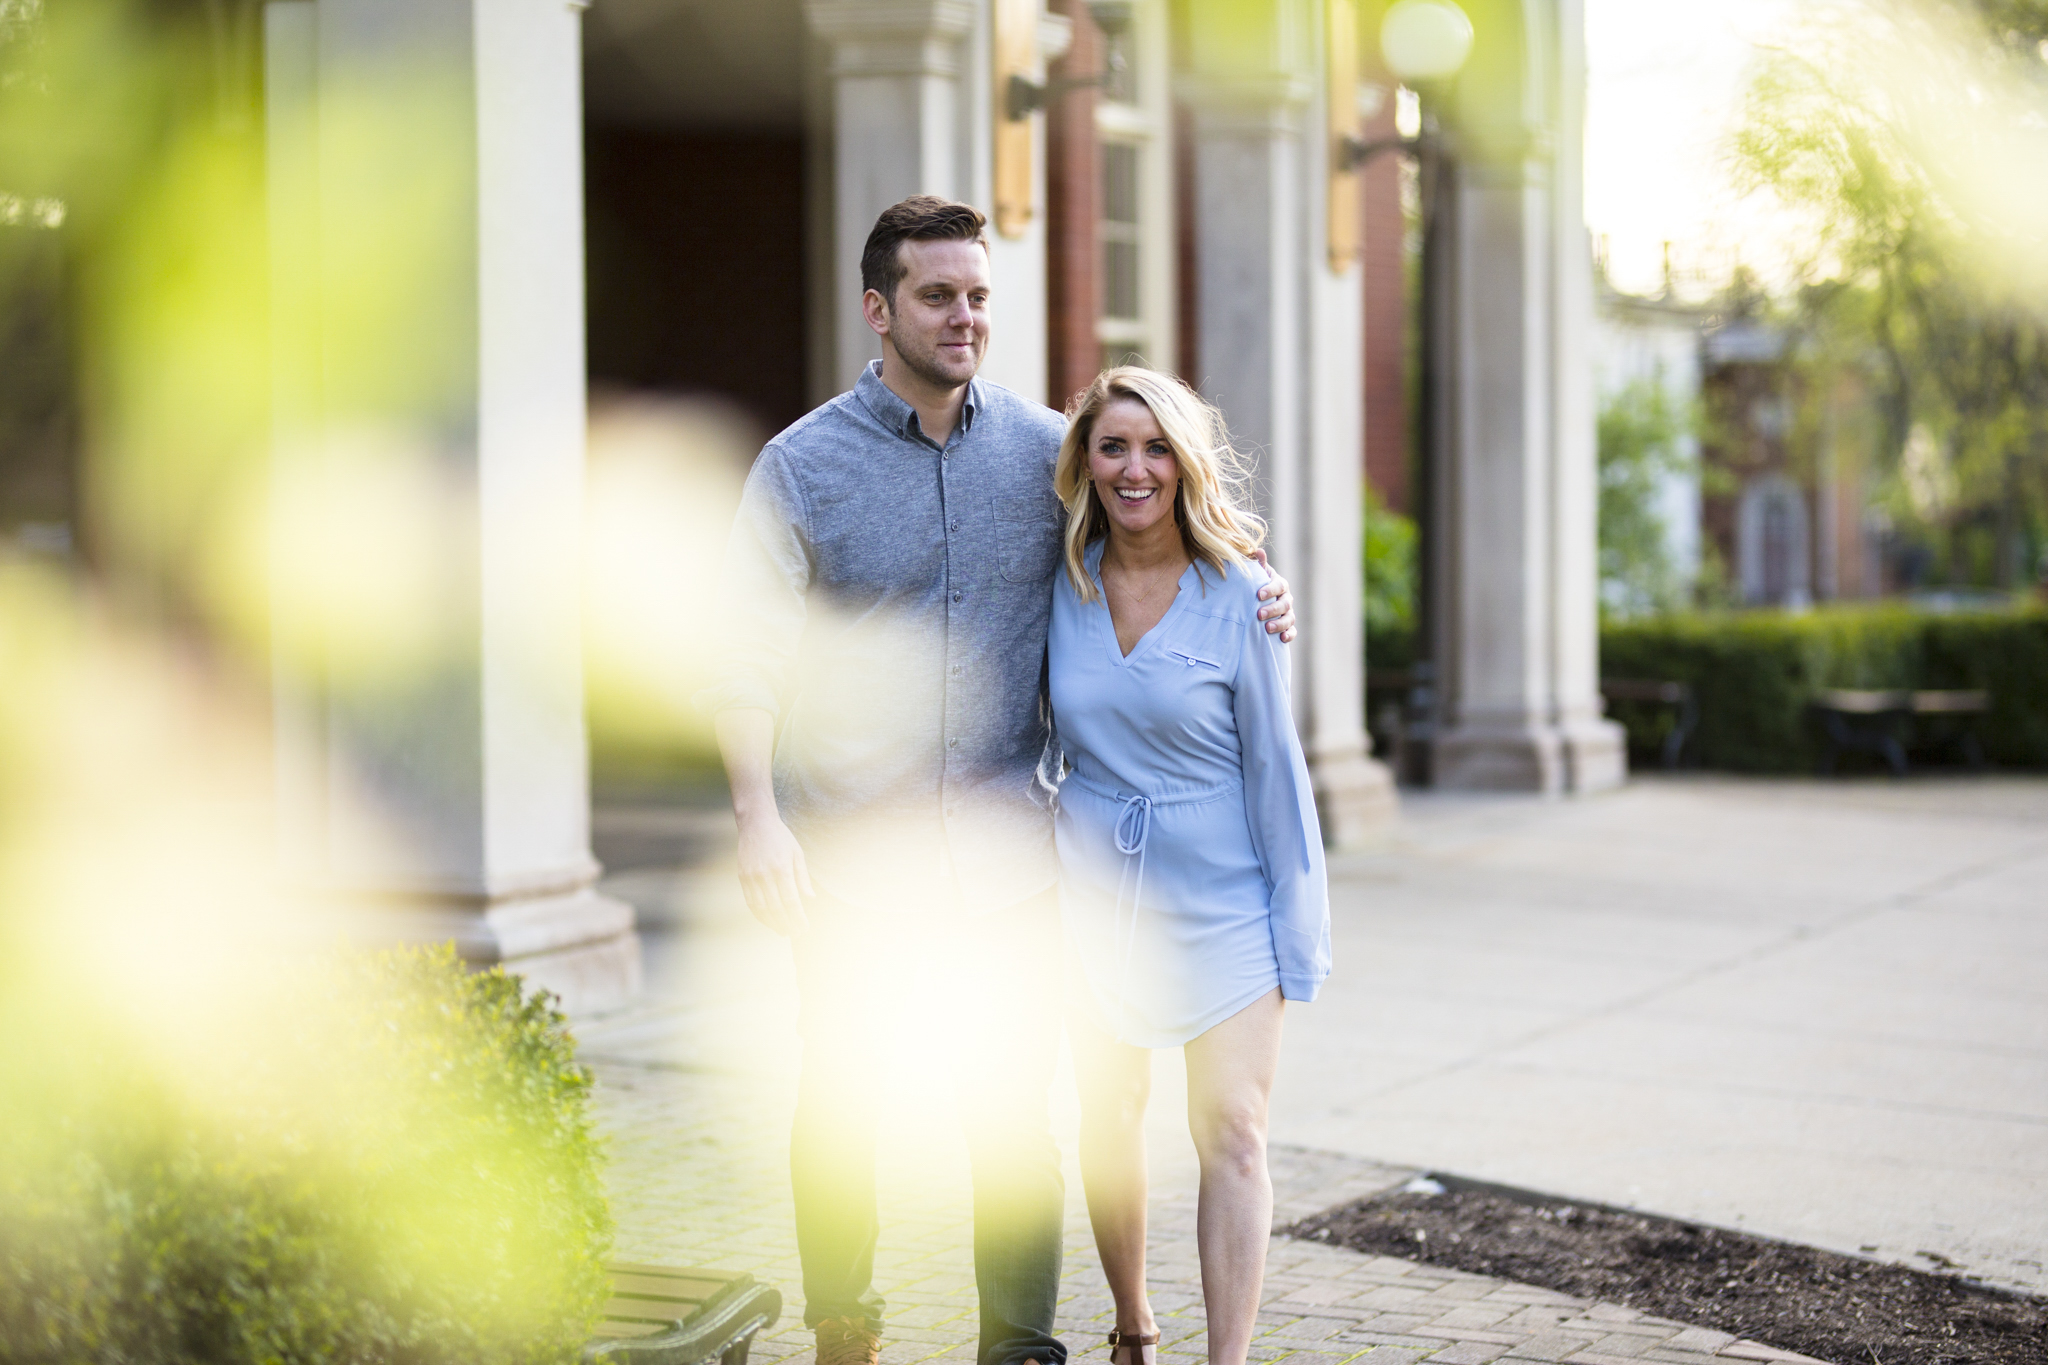 Cincinnati Dayton Columbus Wedding Photographer Photography Engagement 34.jpg